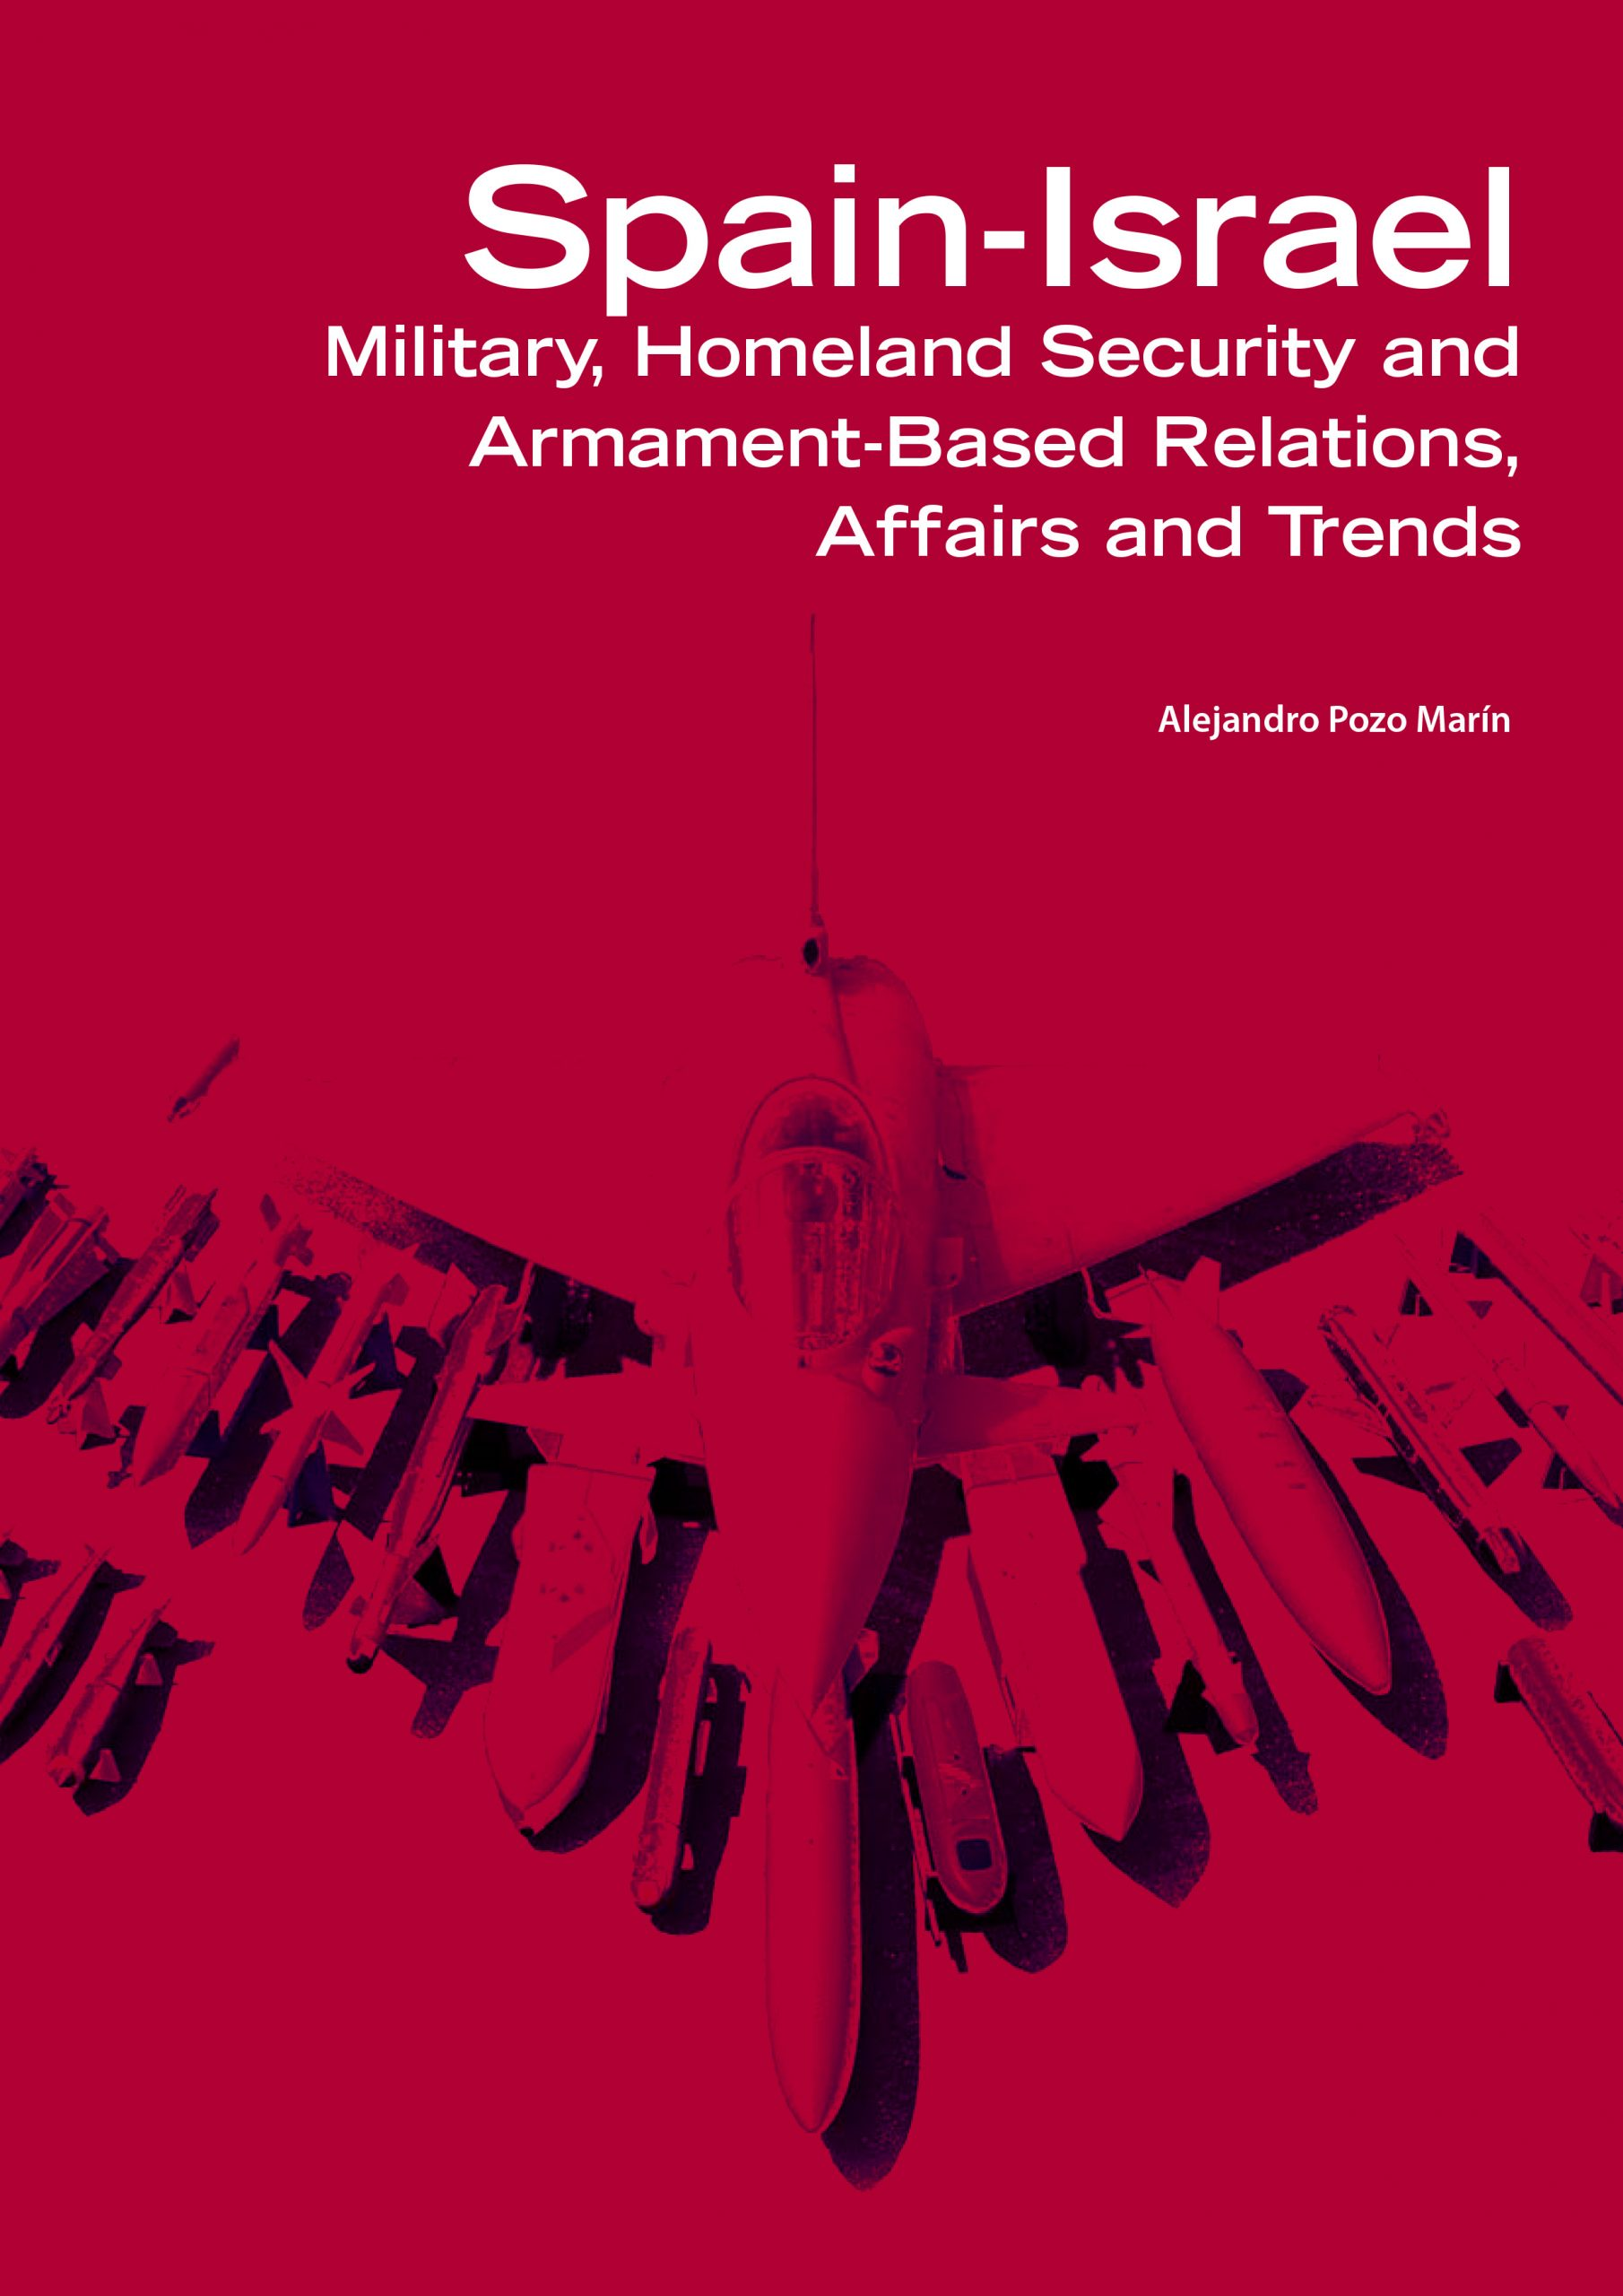 Report: Spain-Israel. Military, Home Security and Armament-Based Relations, Affairs and Trends